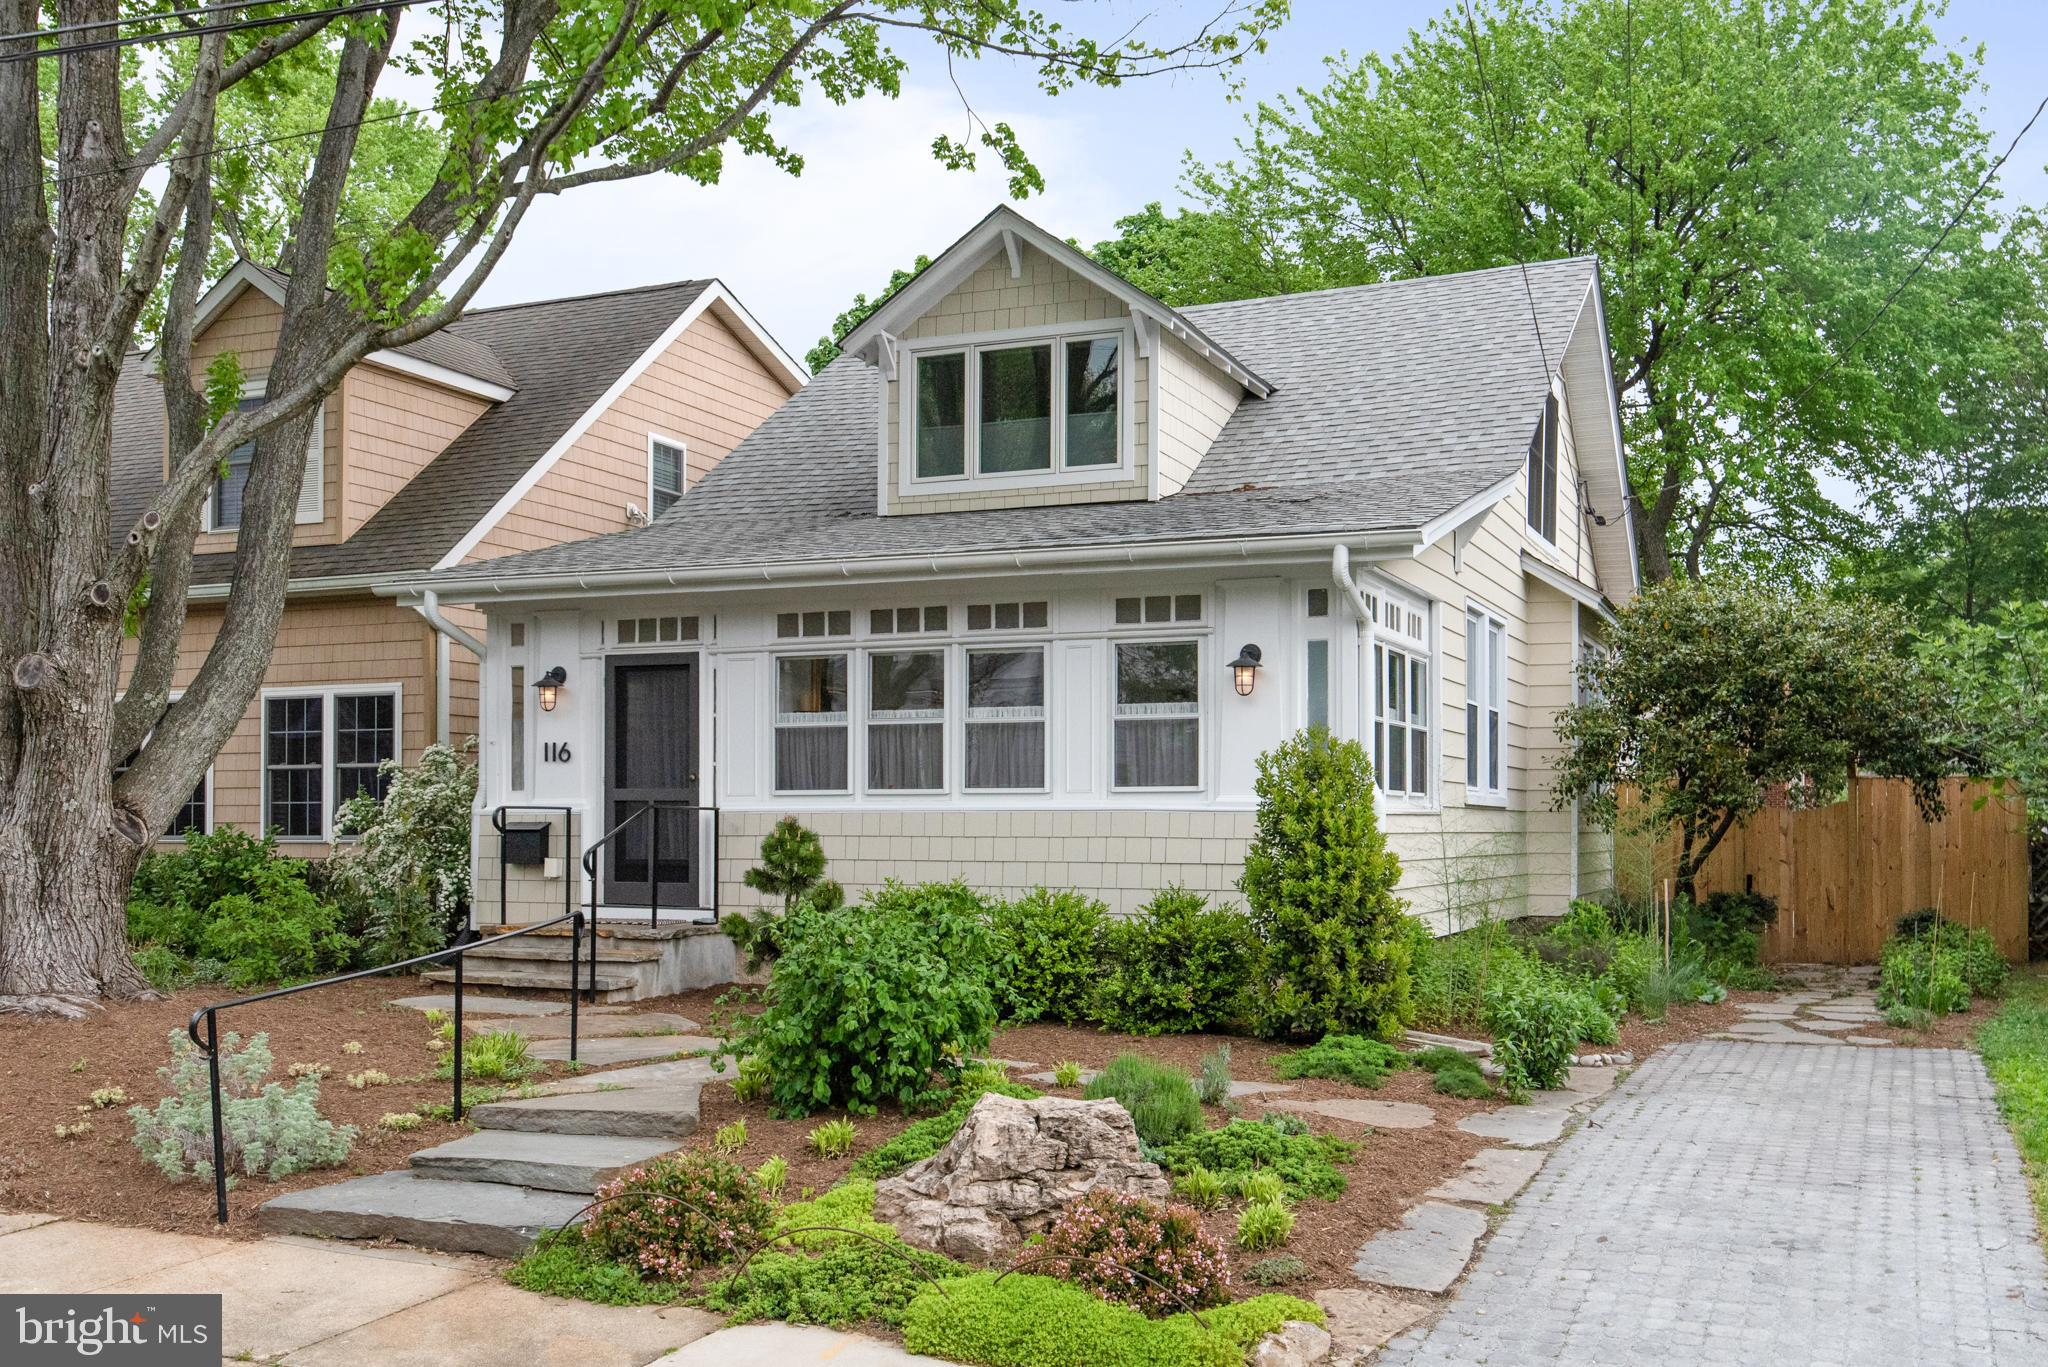 116 Archwood Ave, Annapolis, MD, 21401